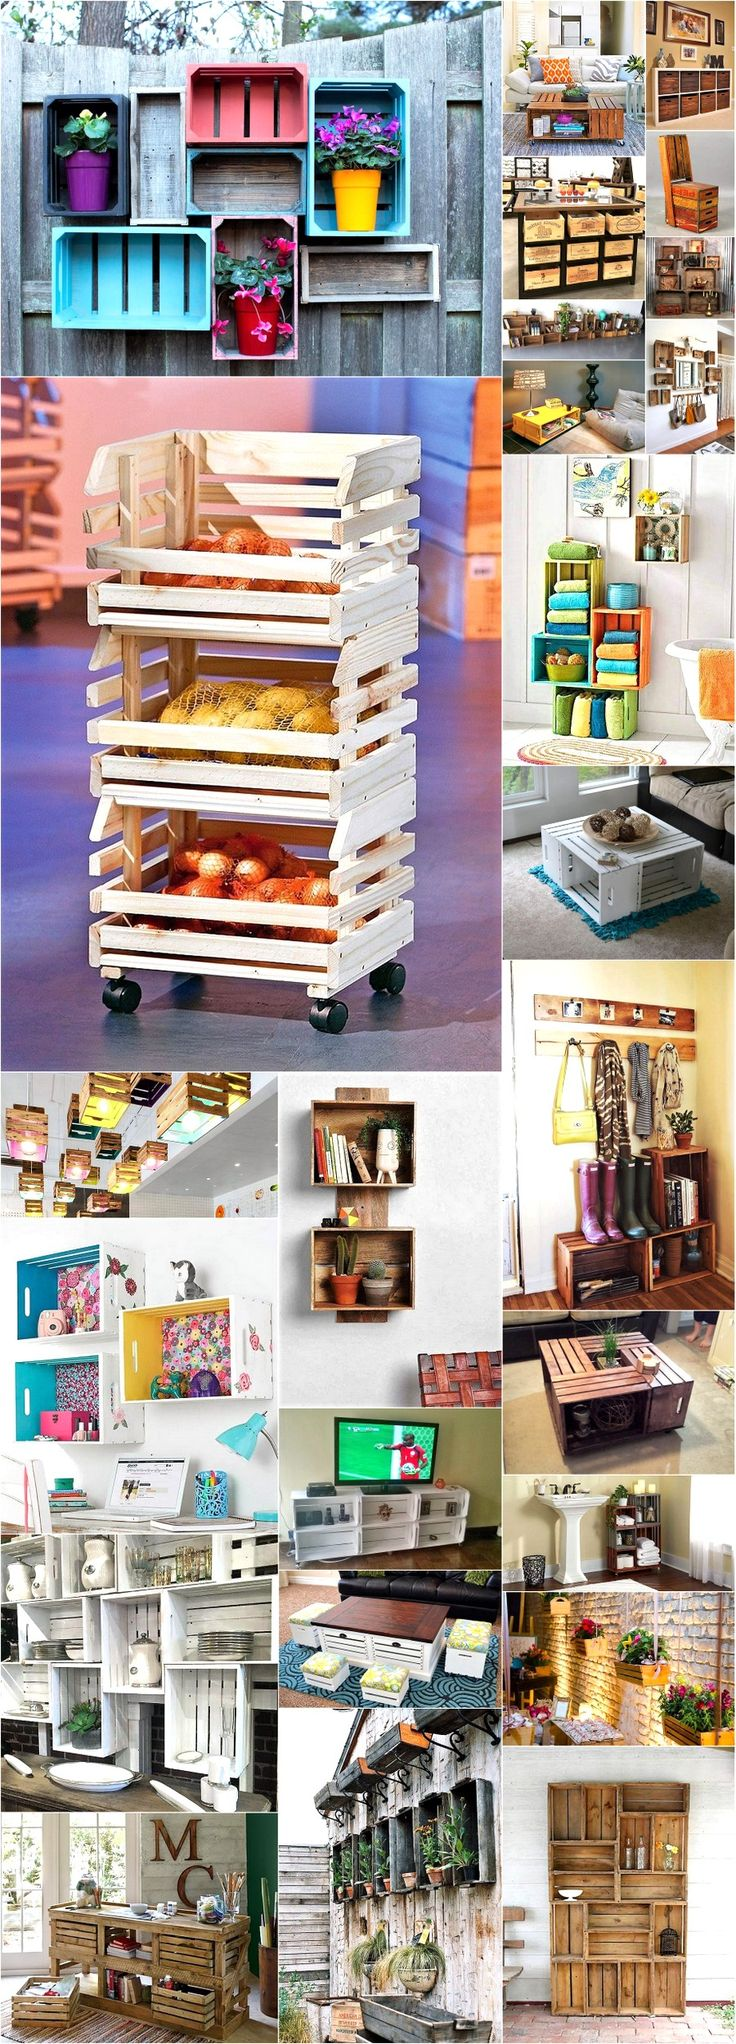 Your home is a place where you can play with your imagination and experiment with various materials, surfaces, textures and forms. You can create a lot of pieces, tables, shelves, cabinets and other stuff, which can be used for storage, decoration and other purposes. pallet wood and crates are very cheap source of getting wood that can be easily re-cycled and re-purposed into purposeful items. You can use the crate as whole or can dismantle it into small planks. You can clean and dis-infect…